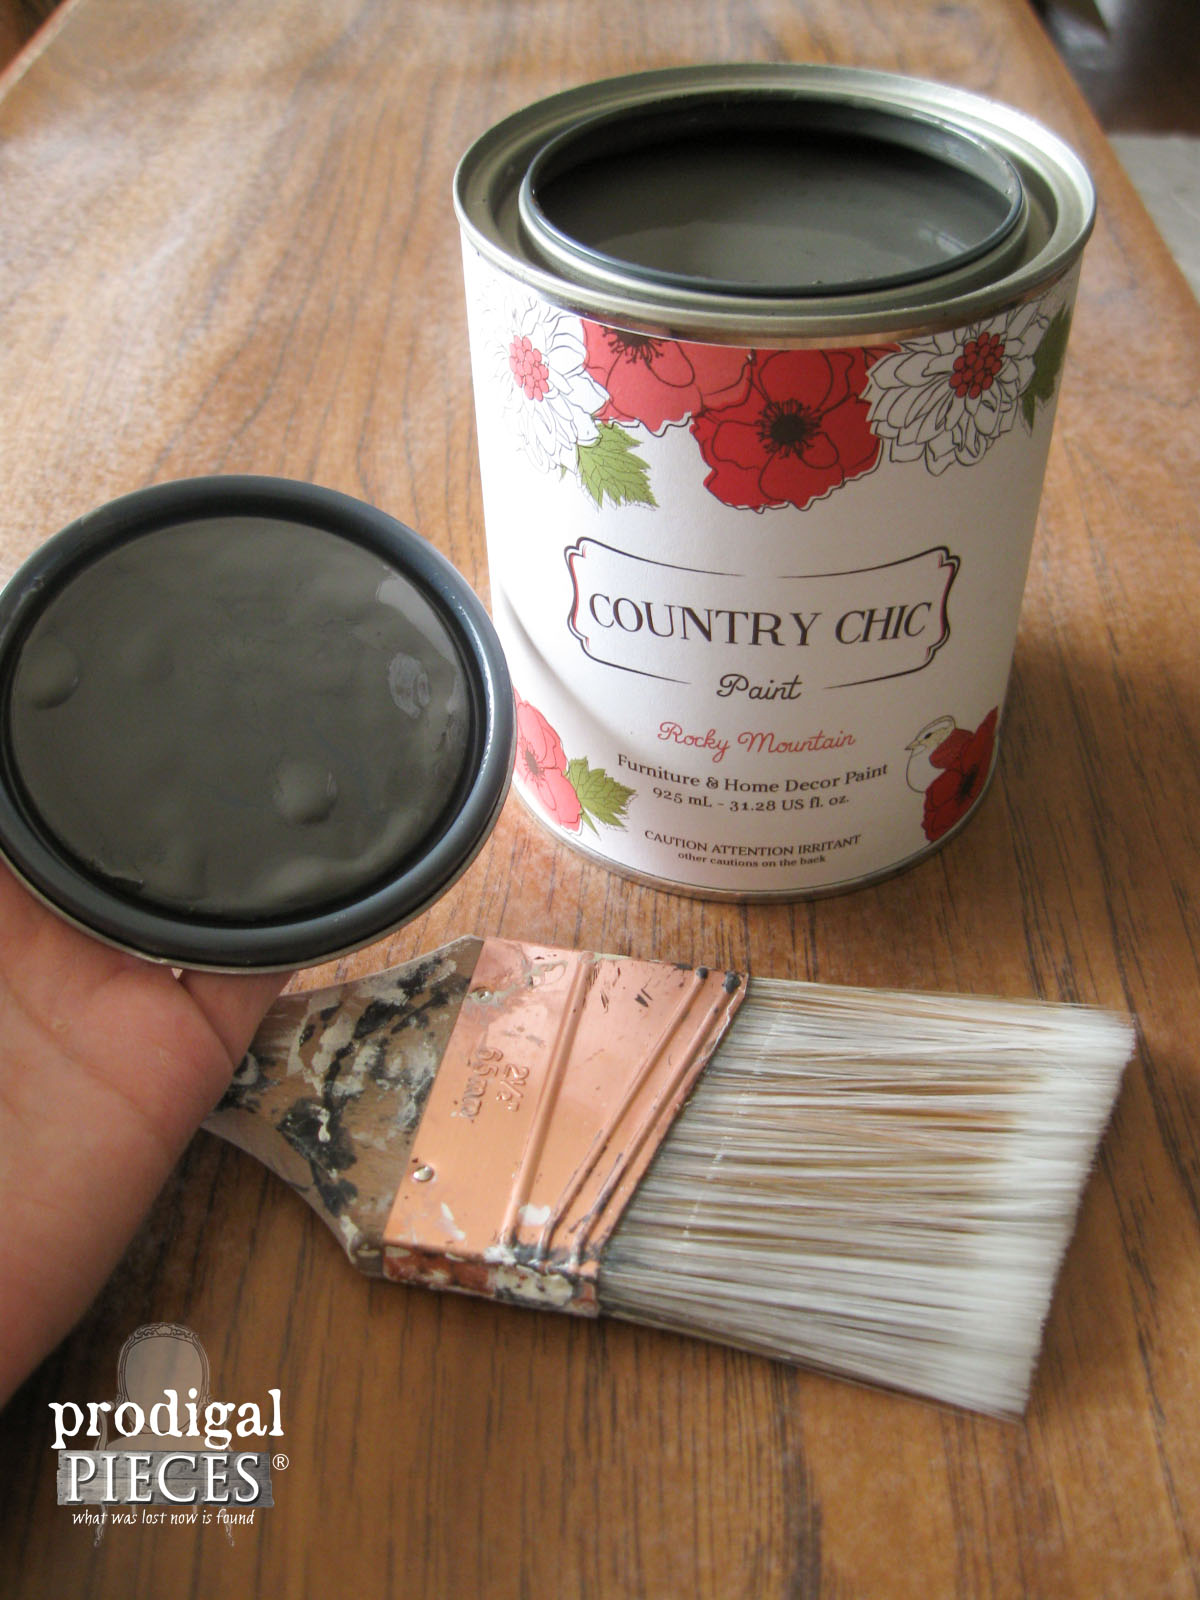 Country Chic Paint in Bliss | Prodigal Pieces | www.prodigalpieces.com